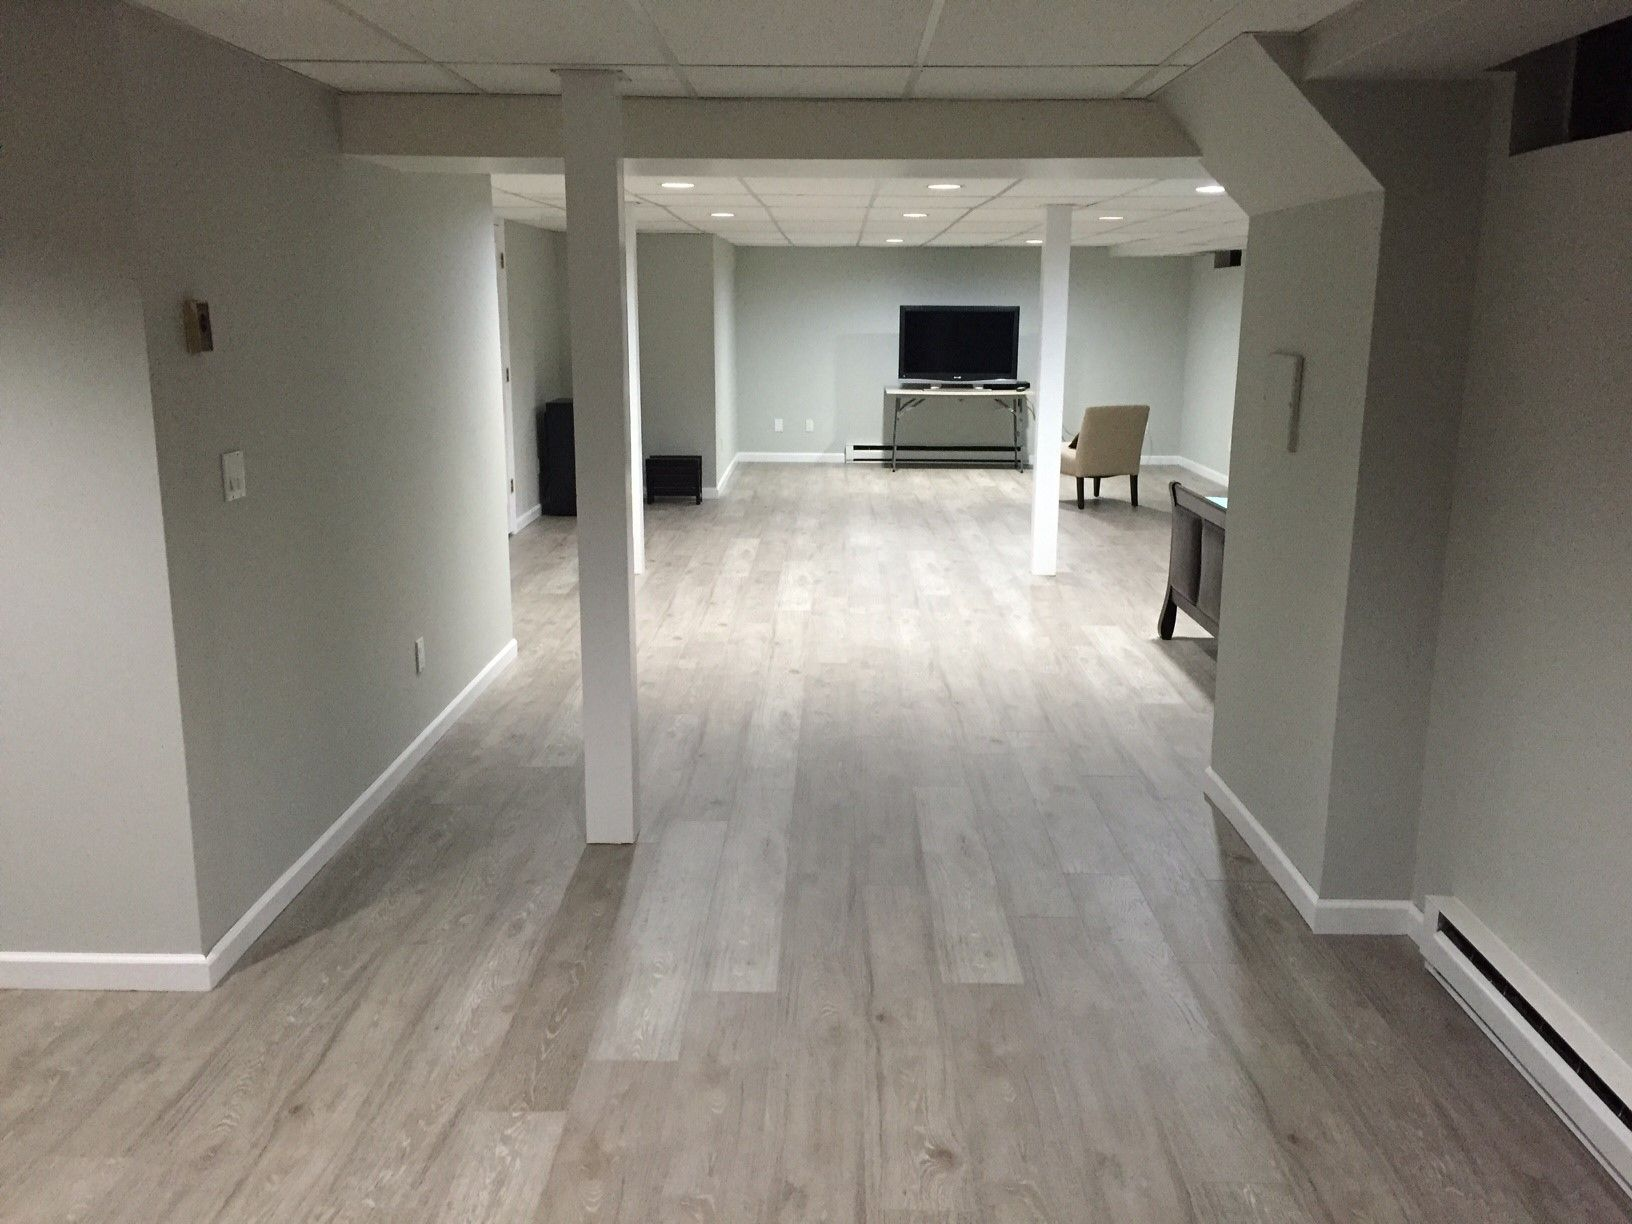 Jose G. upgraded his basement with Kronoswiss Ecru